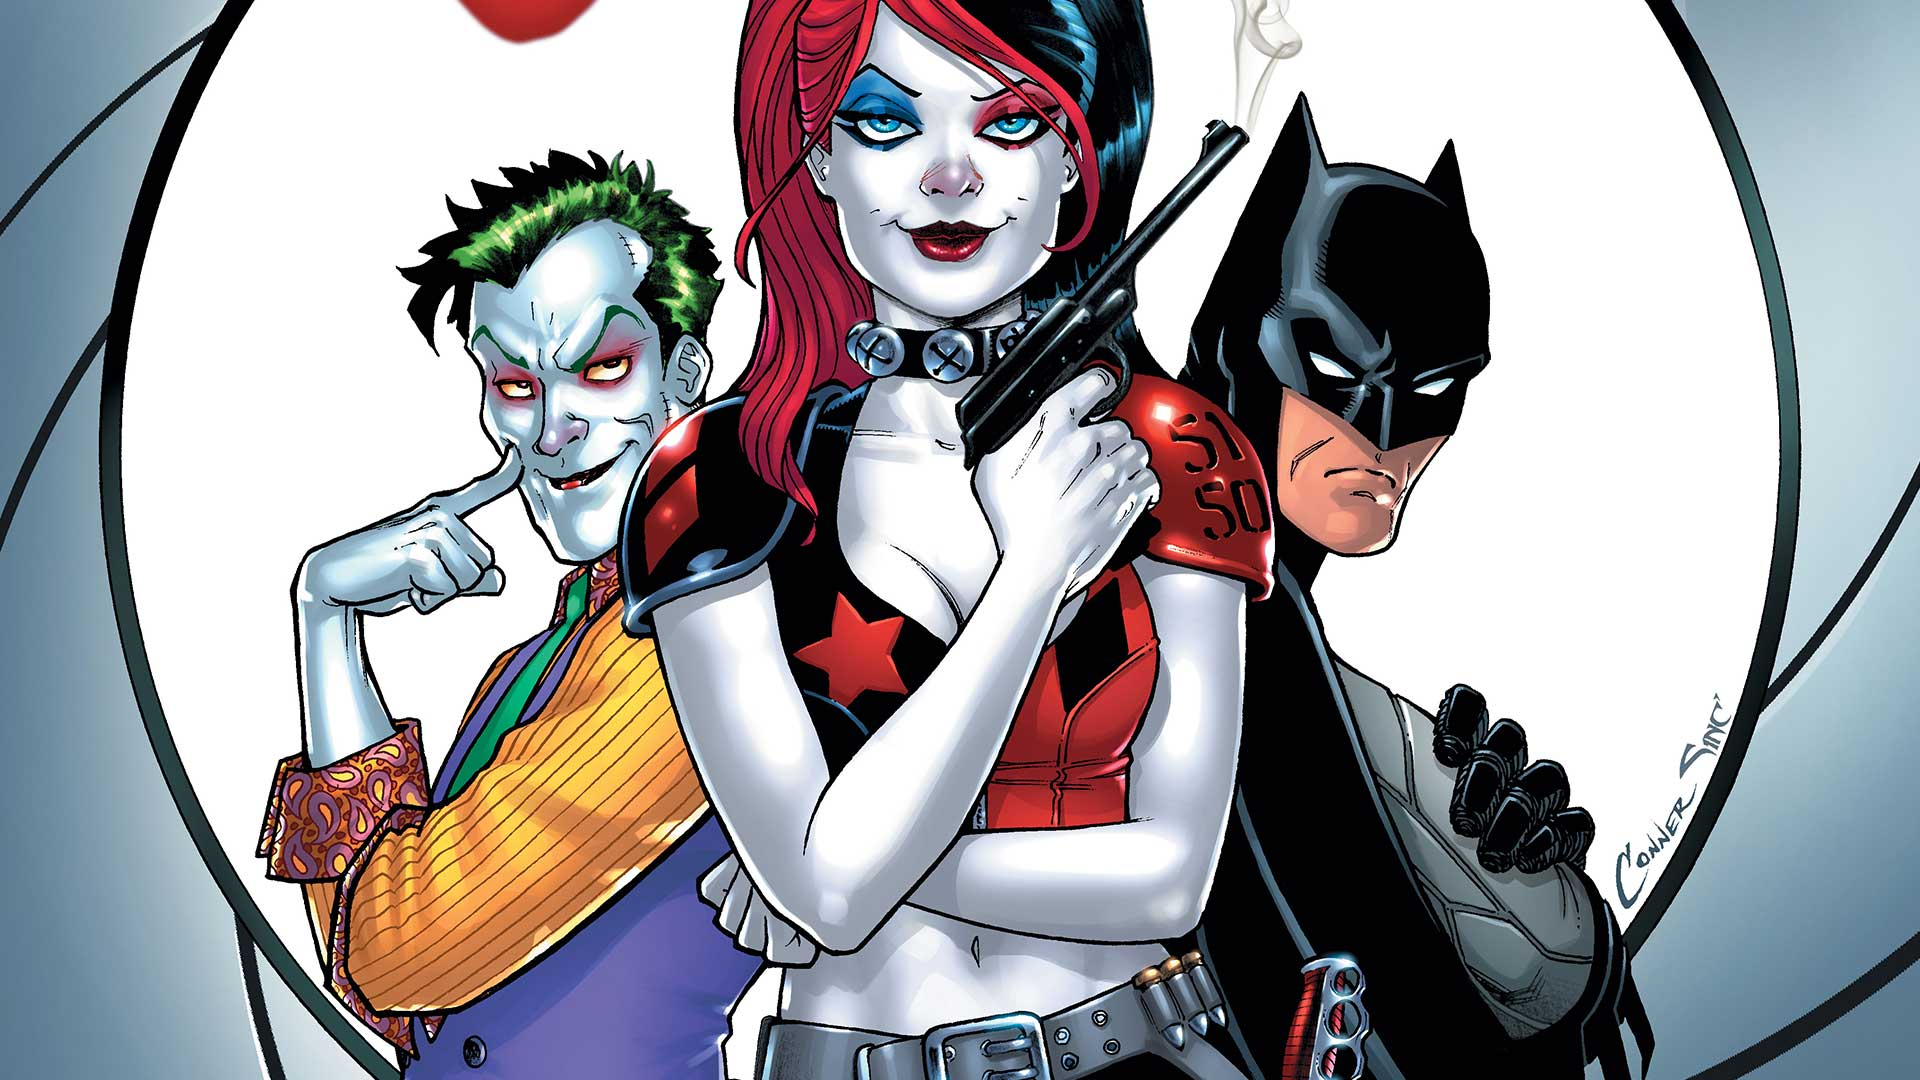 Did Gotham Already Reveal Harley Quinn on marvel superhero hats